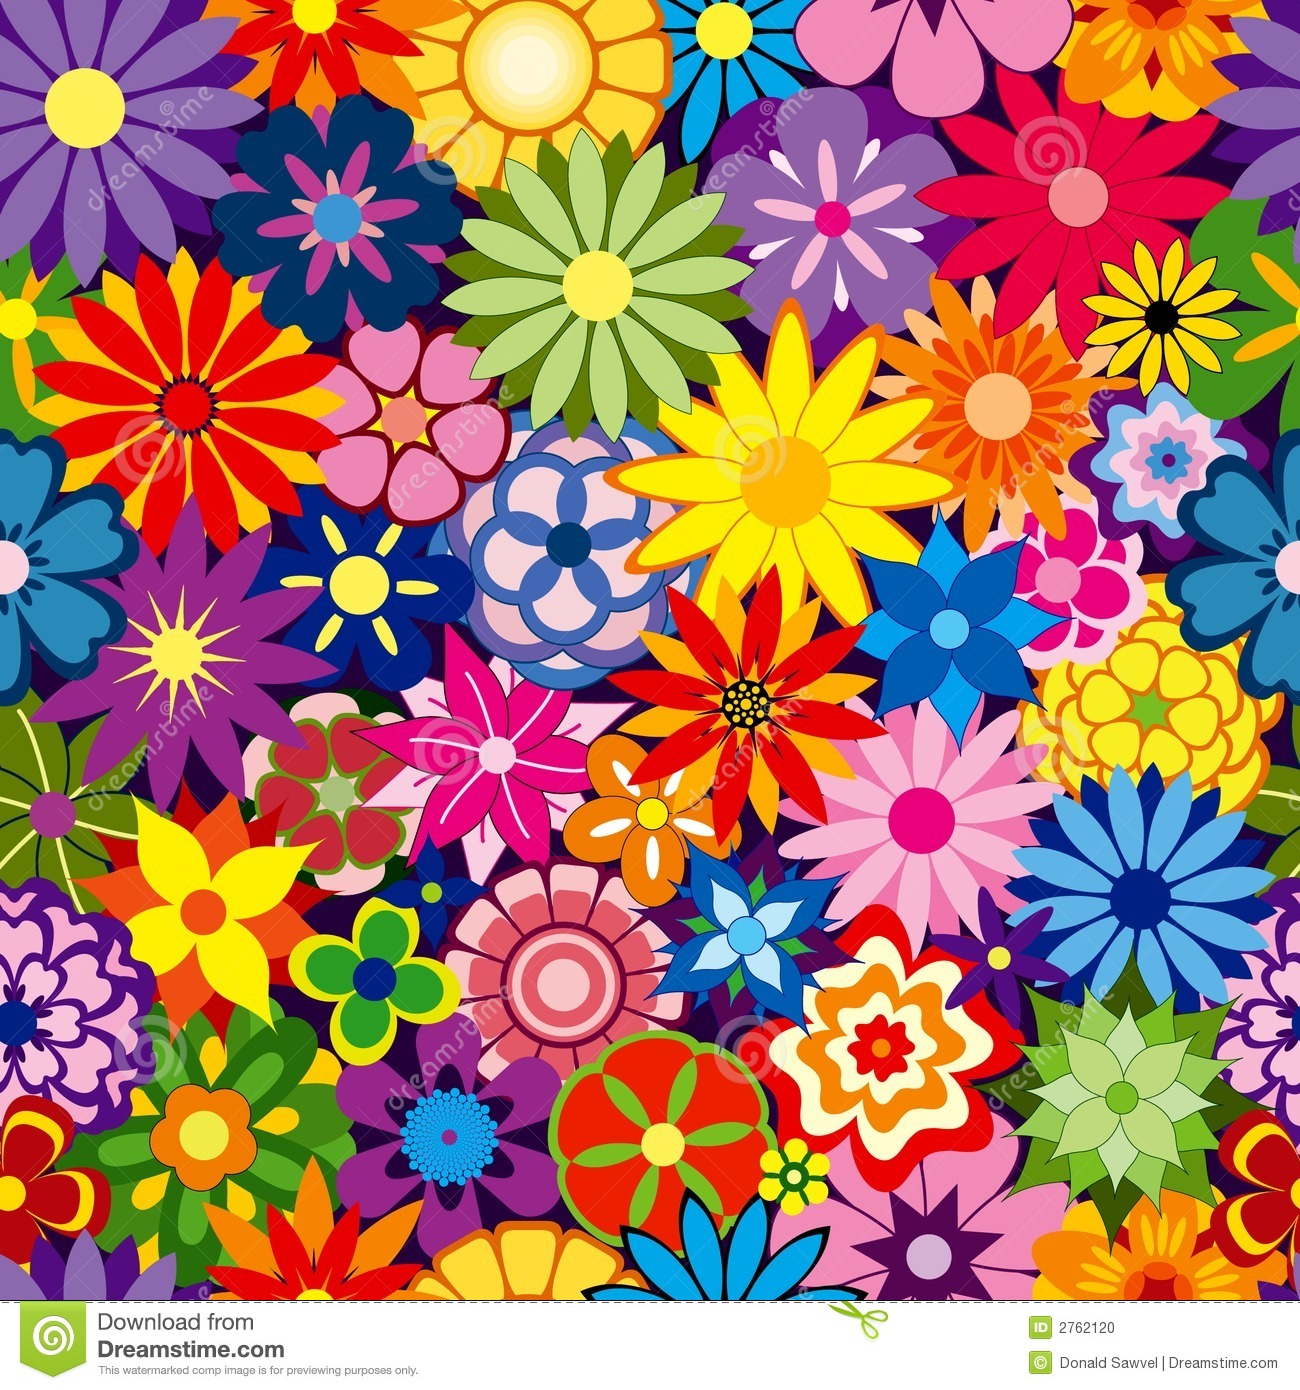 Colorful Flower Background Stock Vector. Illustration Of